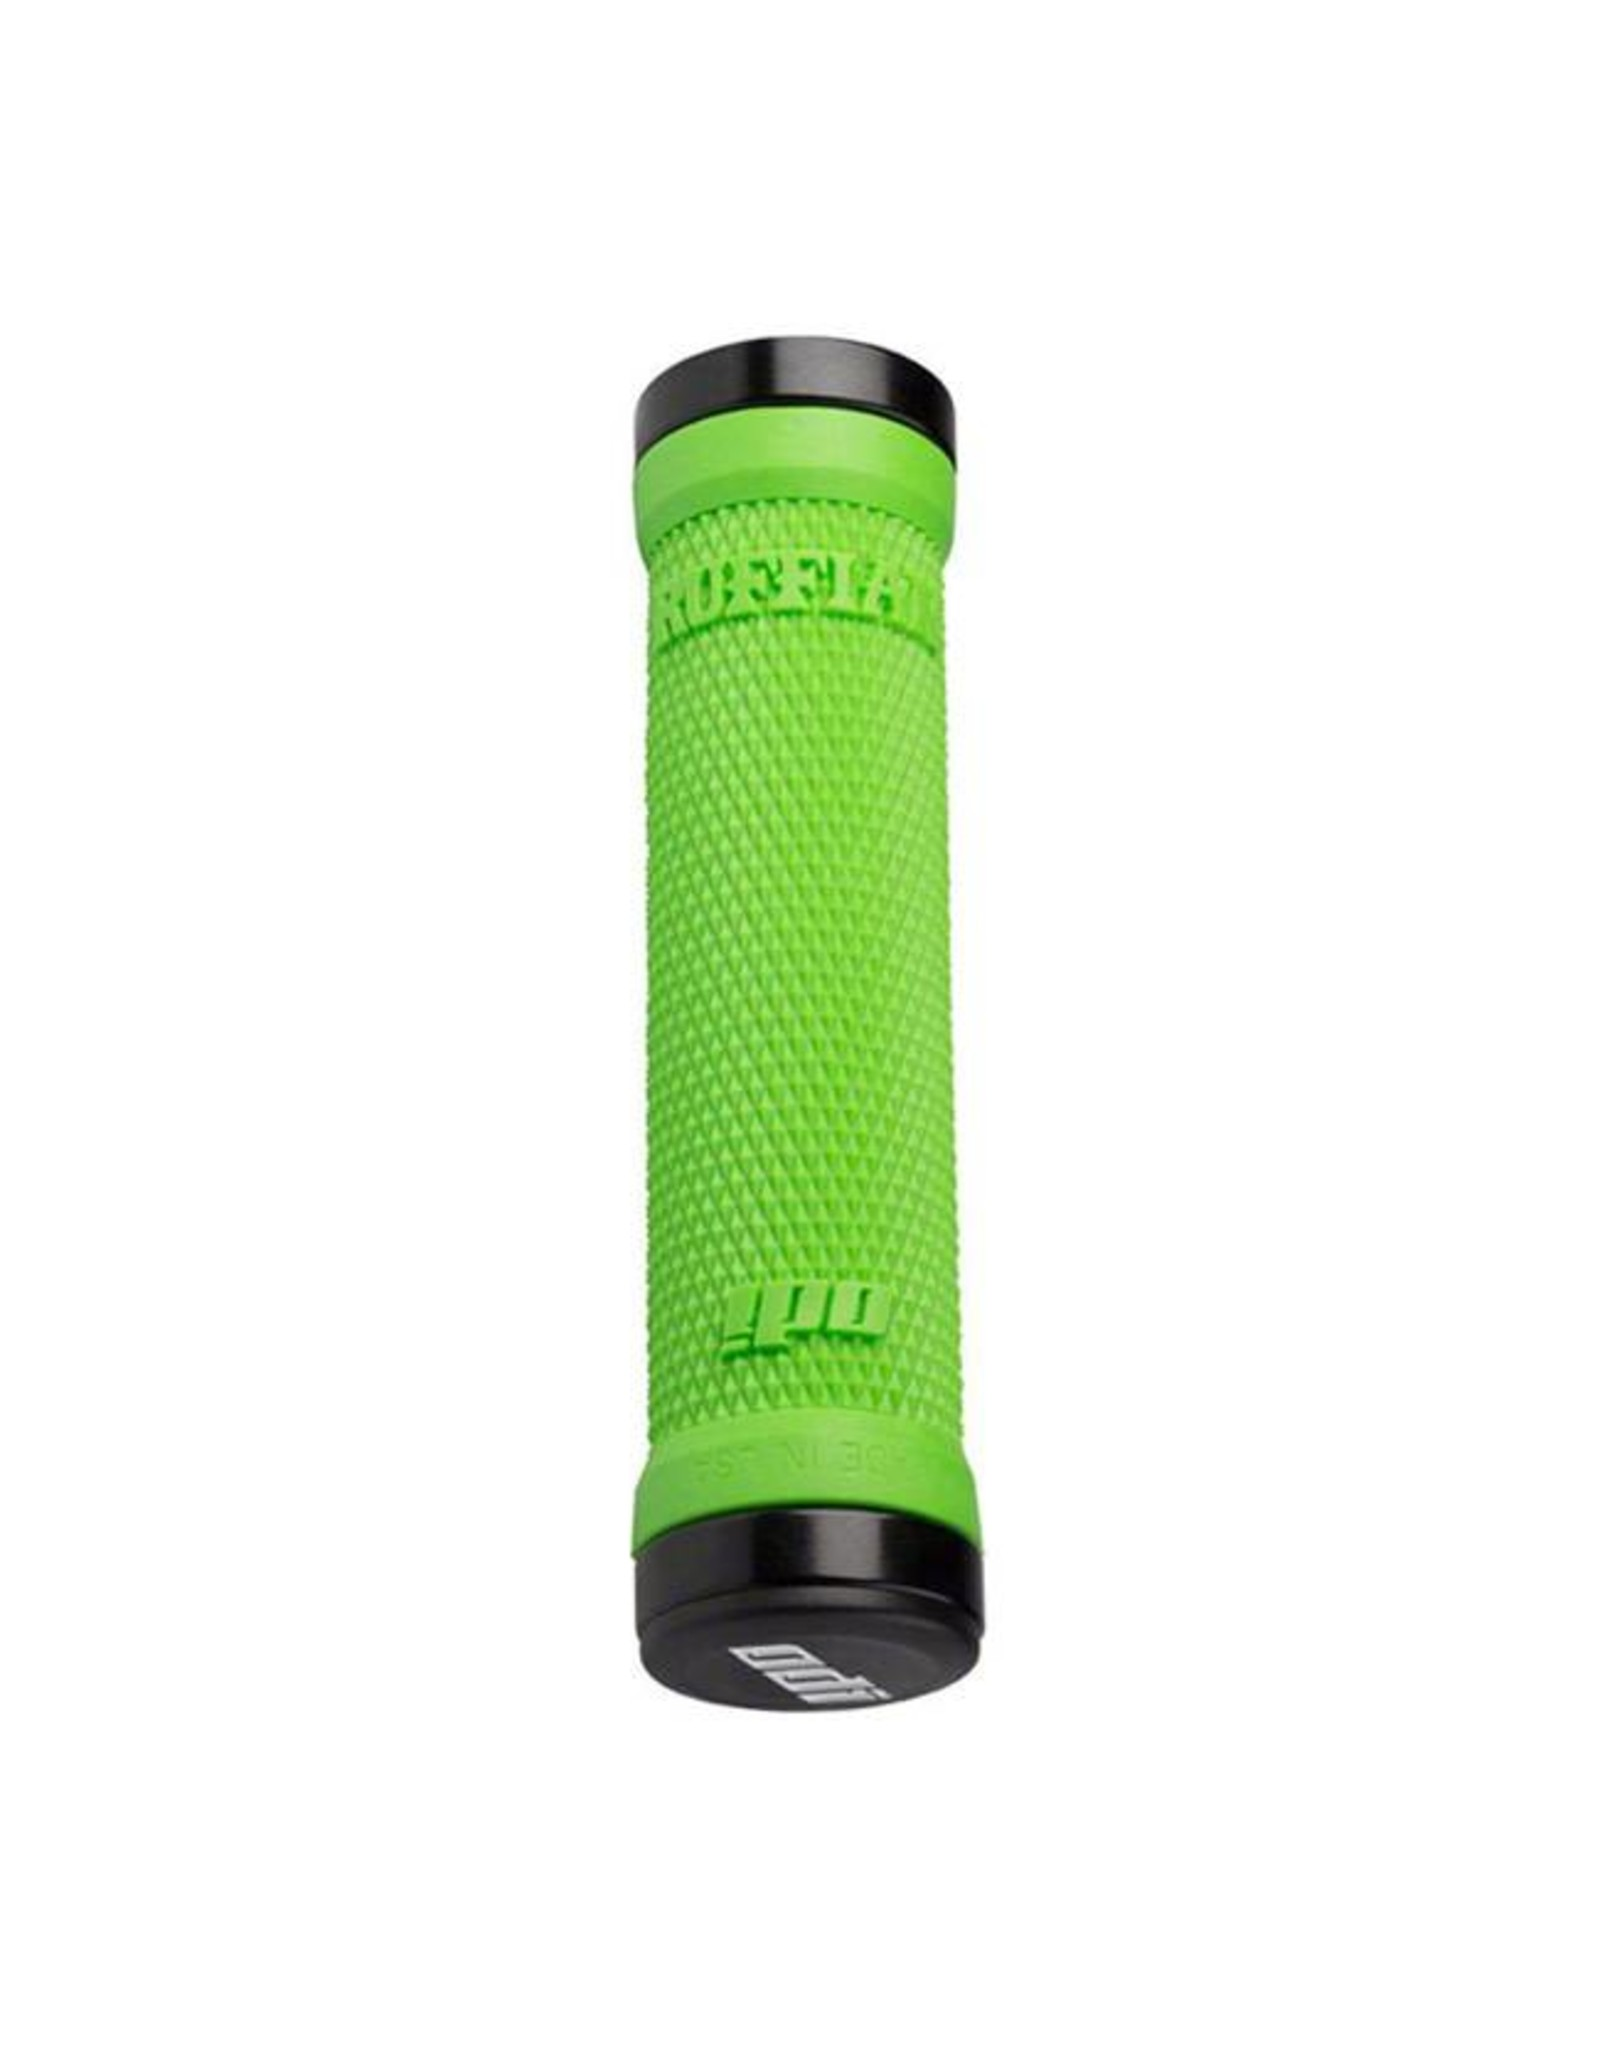 ODI ODI Ruffian MTB Lock On Grips 130mm Lime Green